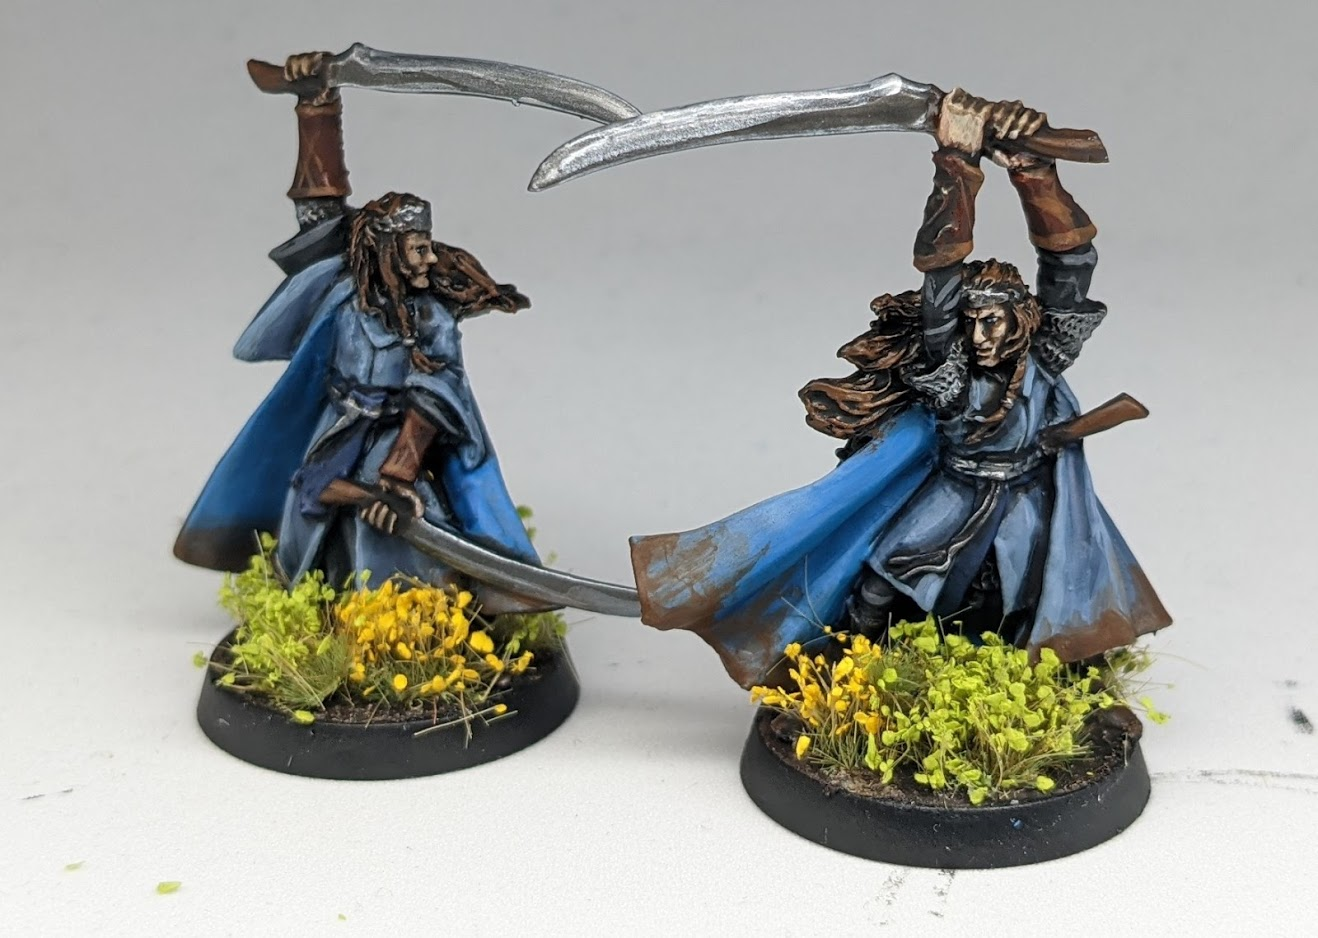 Two model elves in the Lord Of The Rings style, wearing blue robes and carrying paired swords.